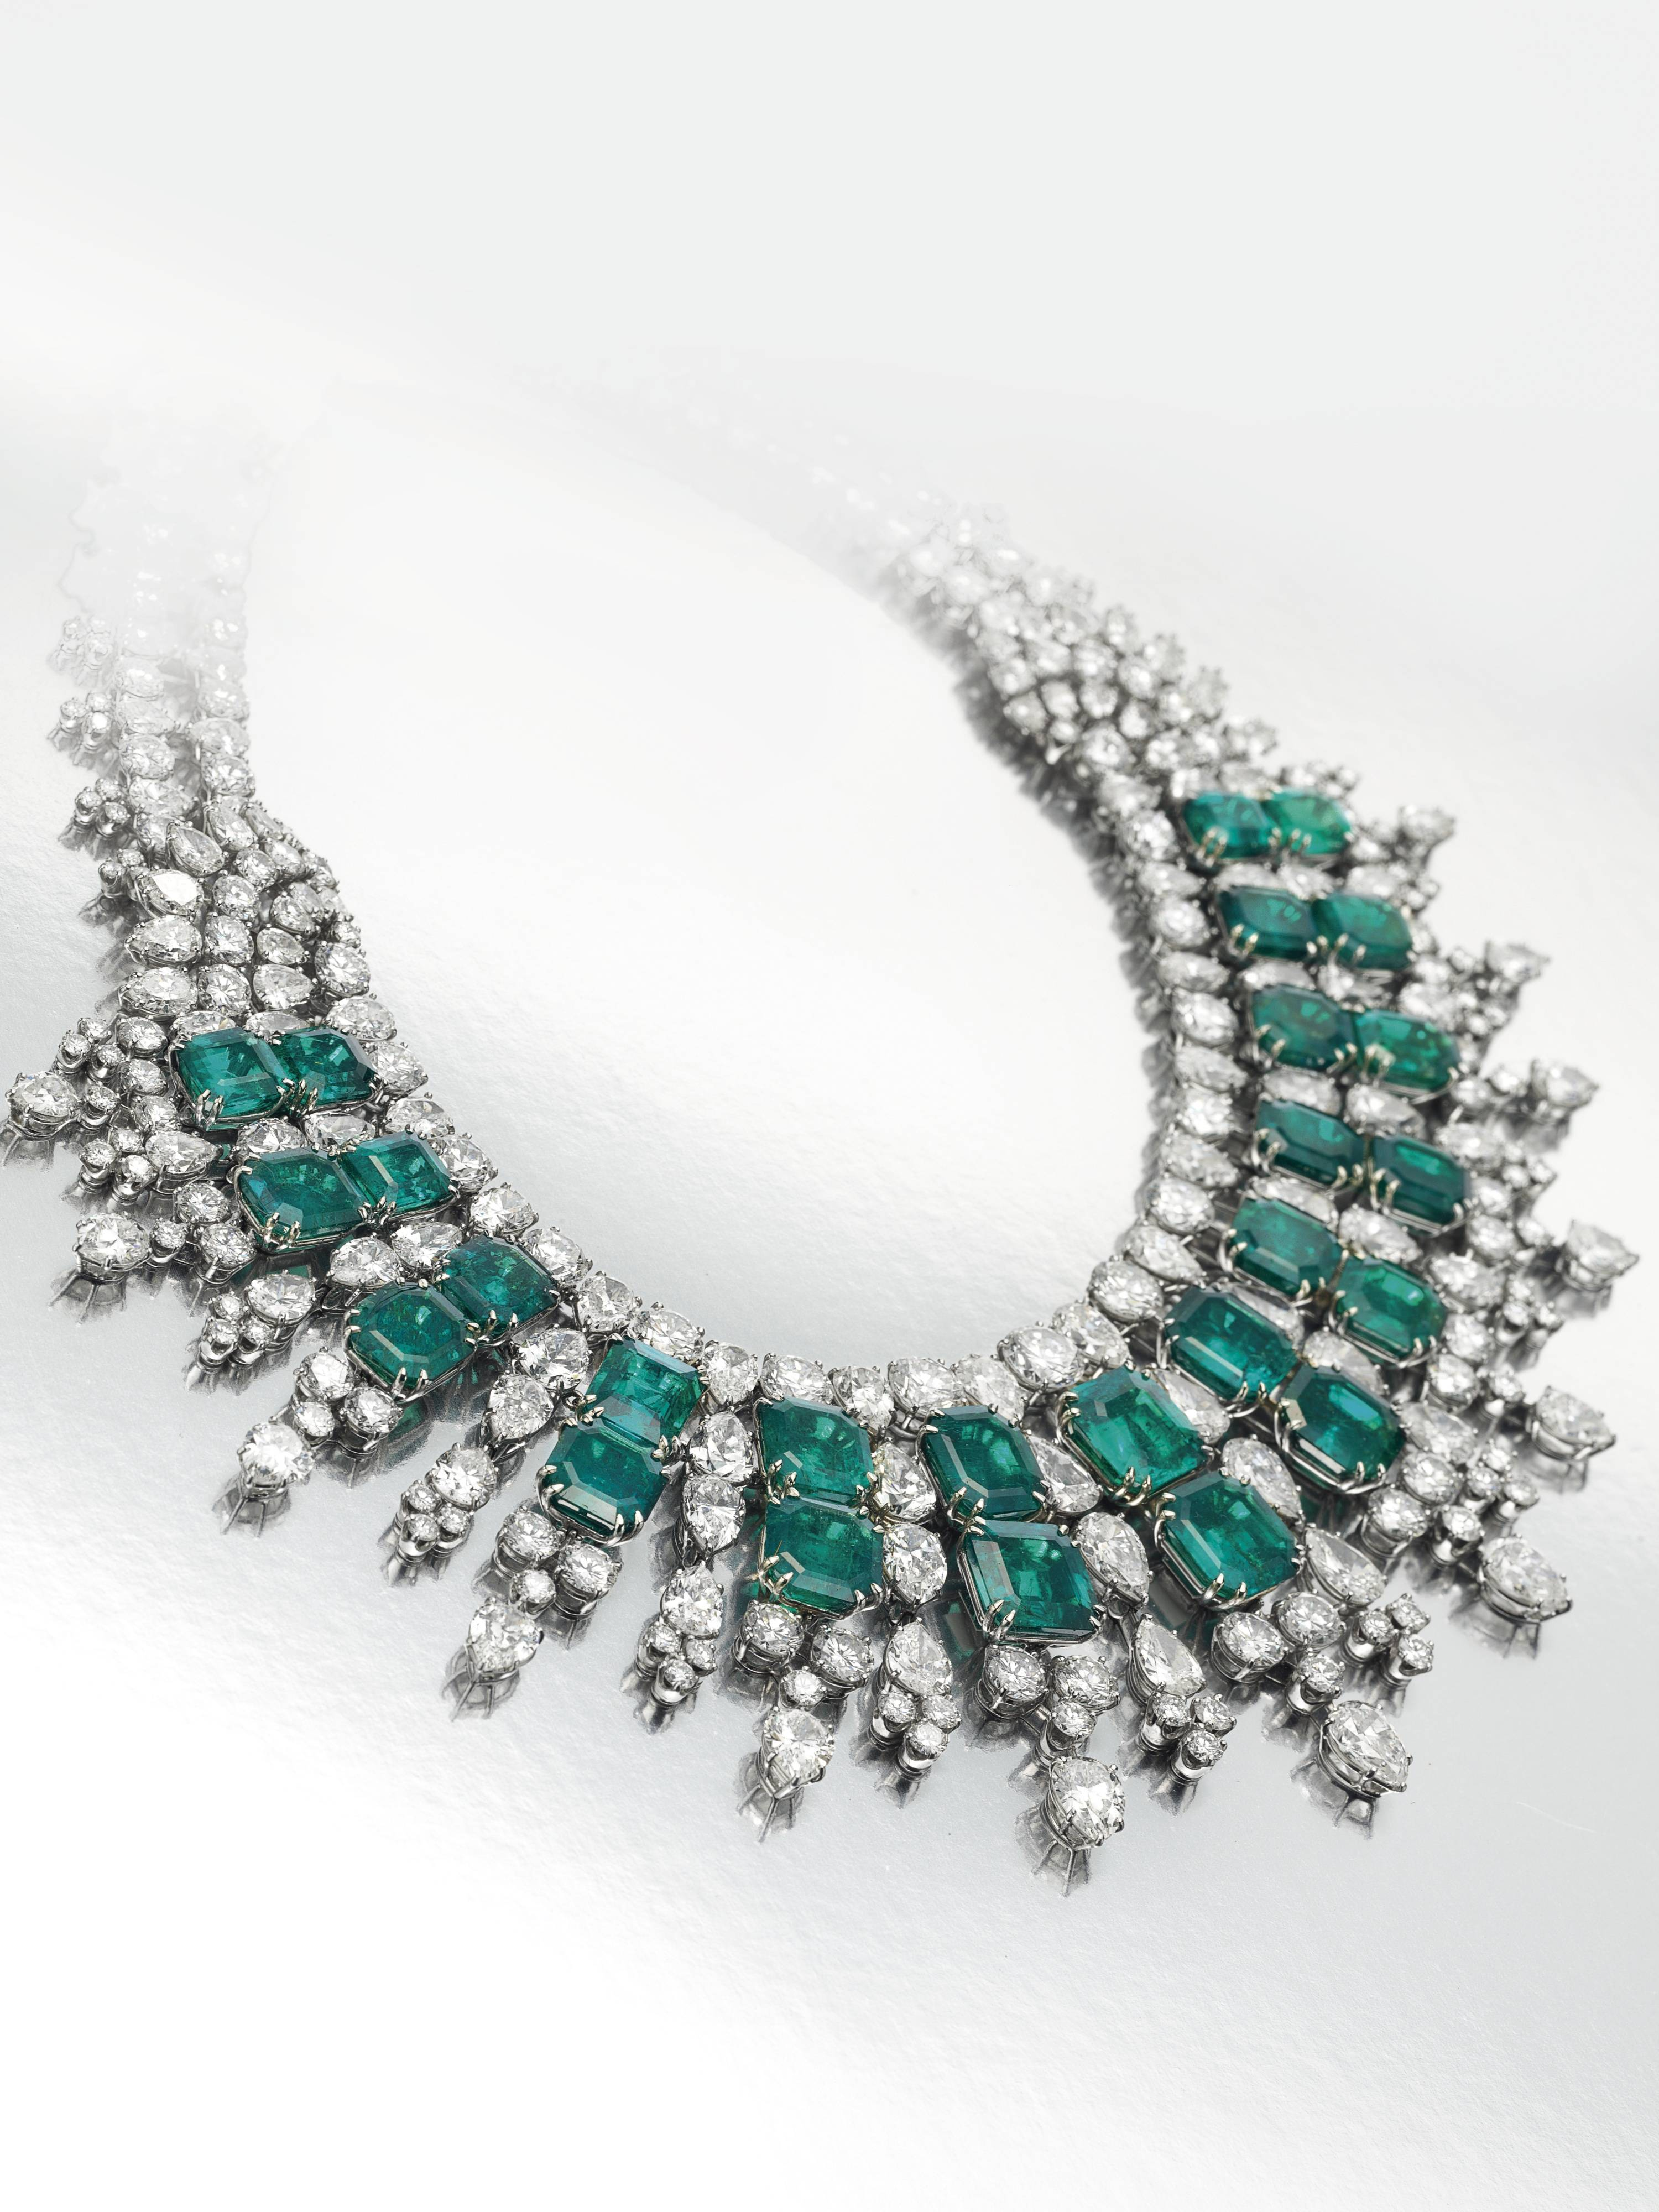 christie s magnifcient jewels spring collection comes to